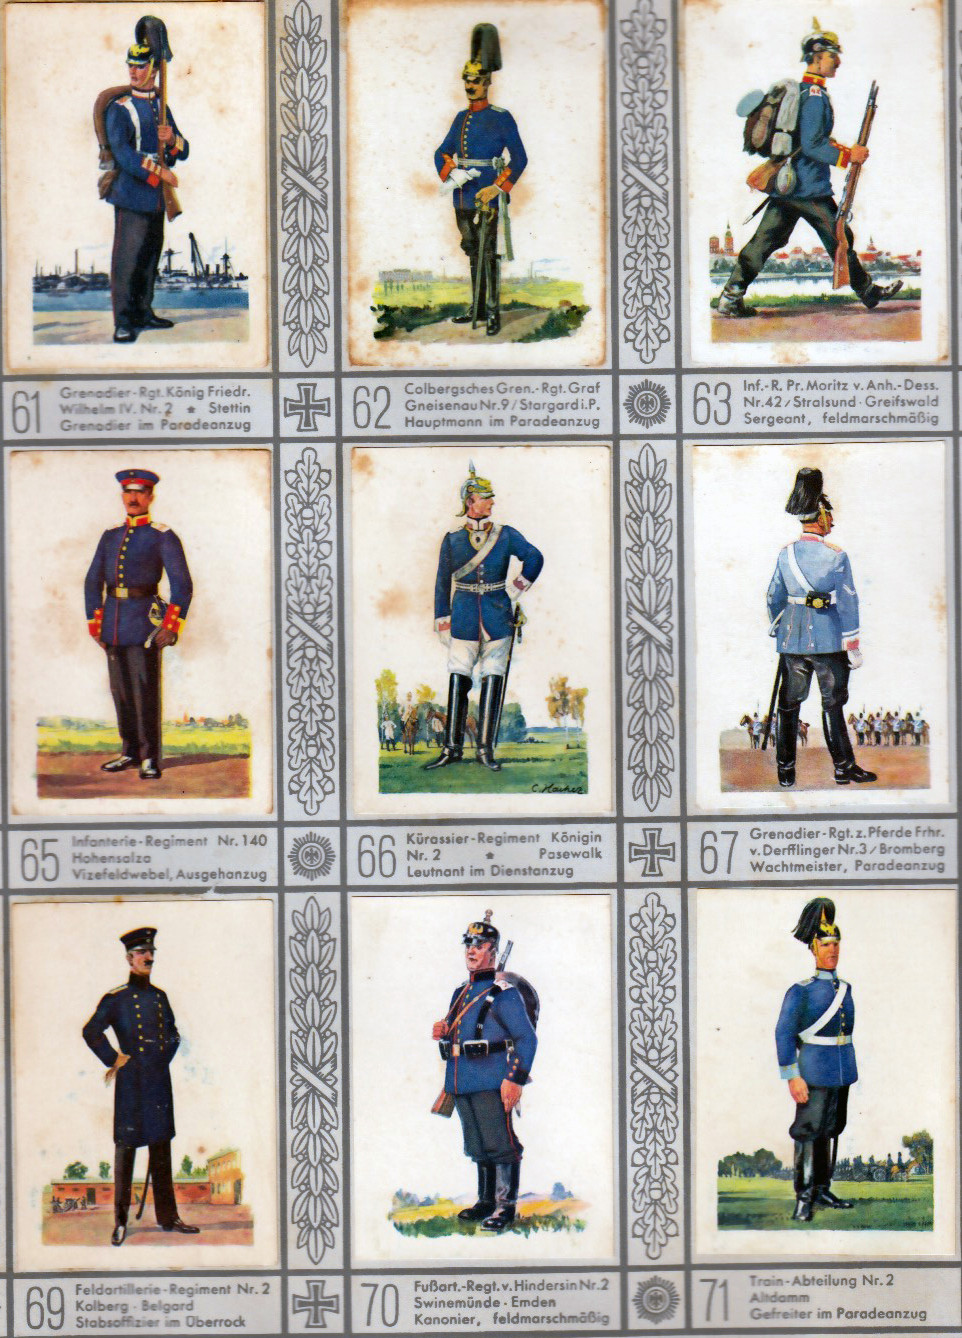 Waldorf-Astoria Cigarette Company put together Uniforms of the Old Army.